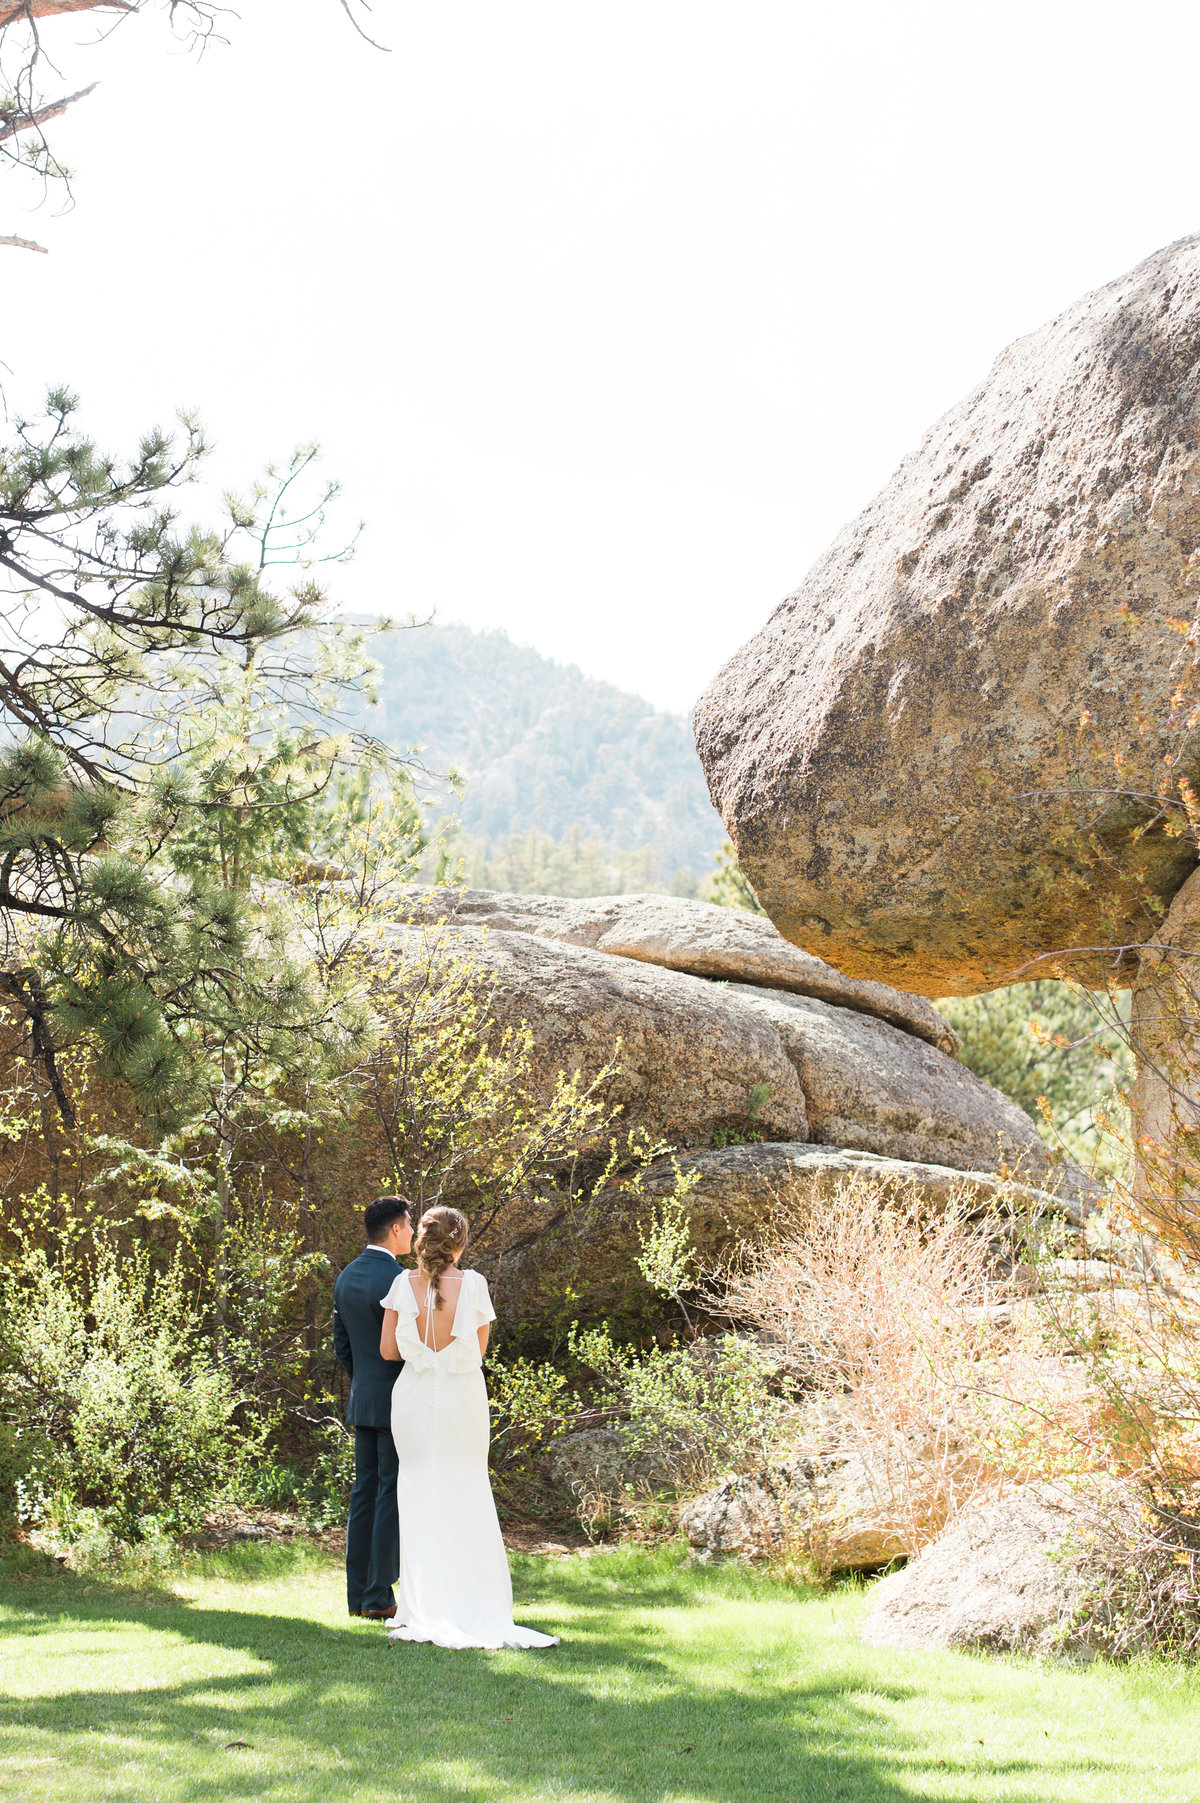 luck love photography - colorado wedding photographer - estes state park colorado wedding - fine art photographer - libby & david-44